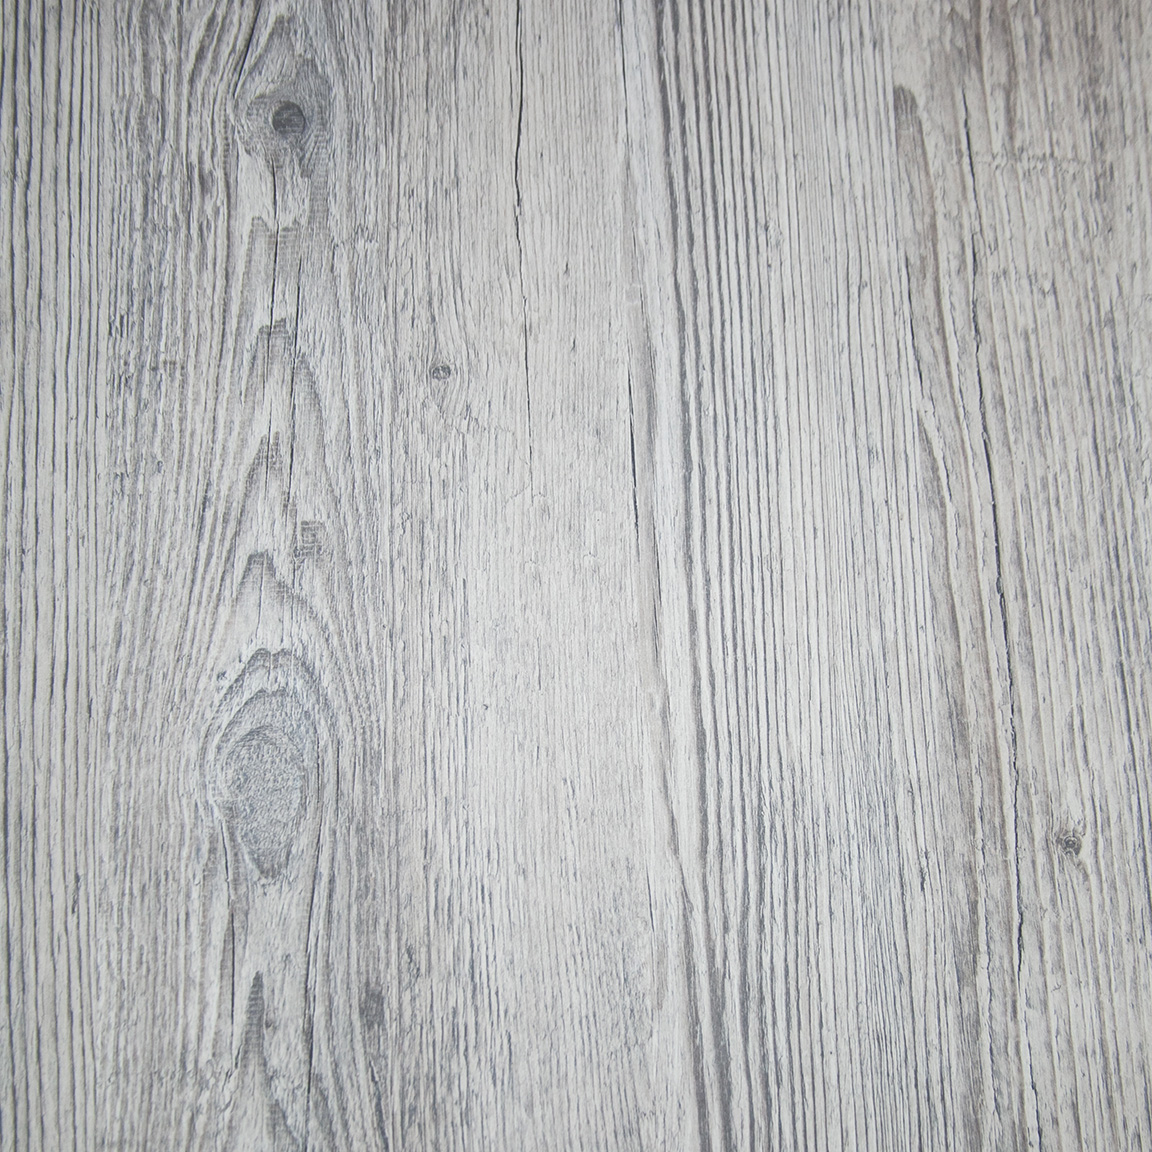 9 Different Laminates To Bring Out The Best Of Your Space